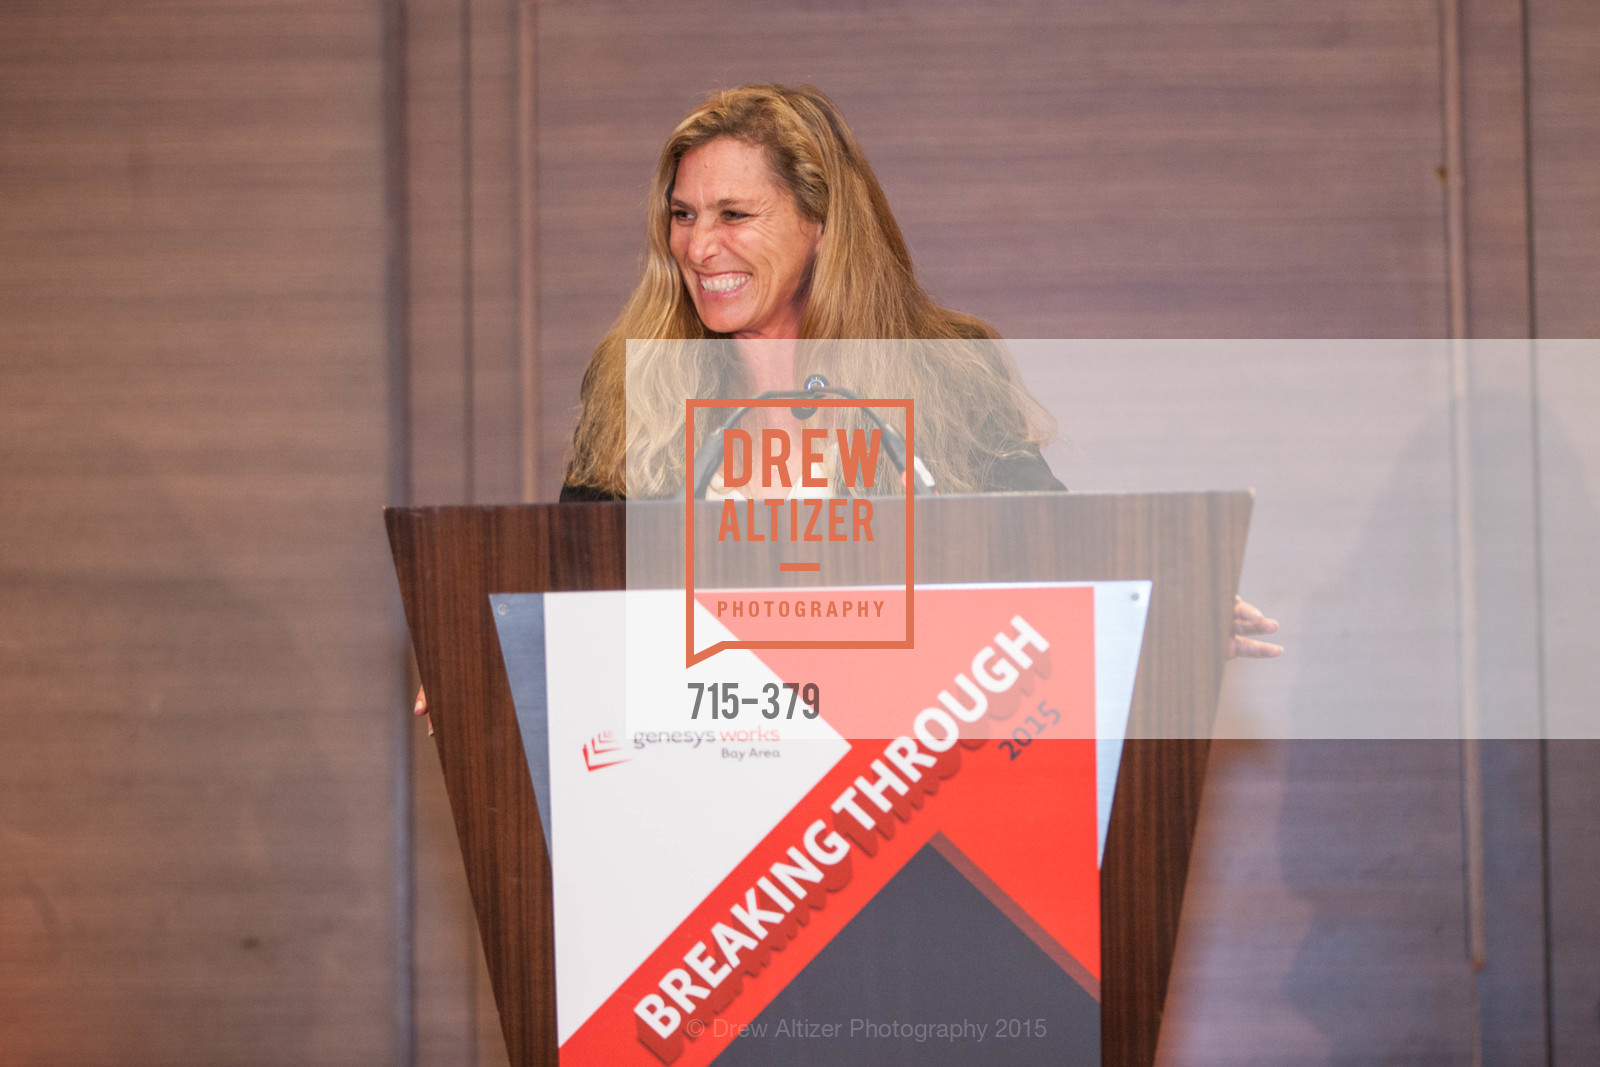 Sabrina DiBianca, Genesys Works Bay Area Presents BREAKING THROUGH, St. Regis Hotel. 125 3rd St, October 14th, 2015,Drew Altizer, Drew Altizer Photography, full-service event agency, private events, San Francisco photographer, photographer California